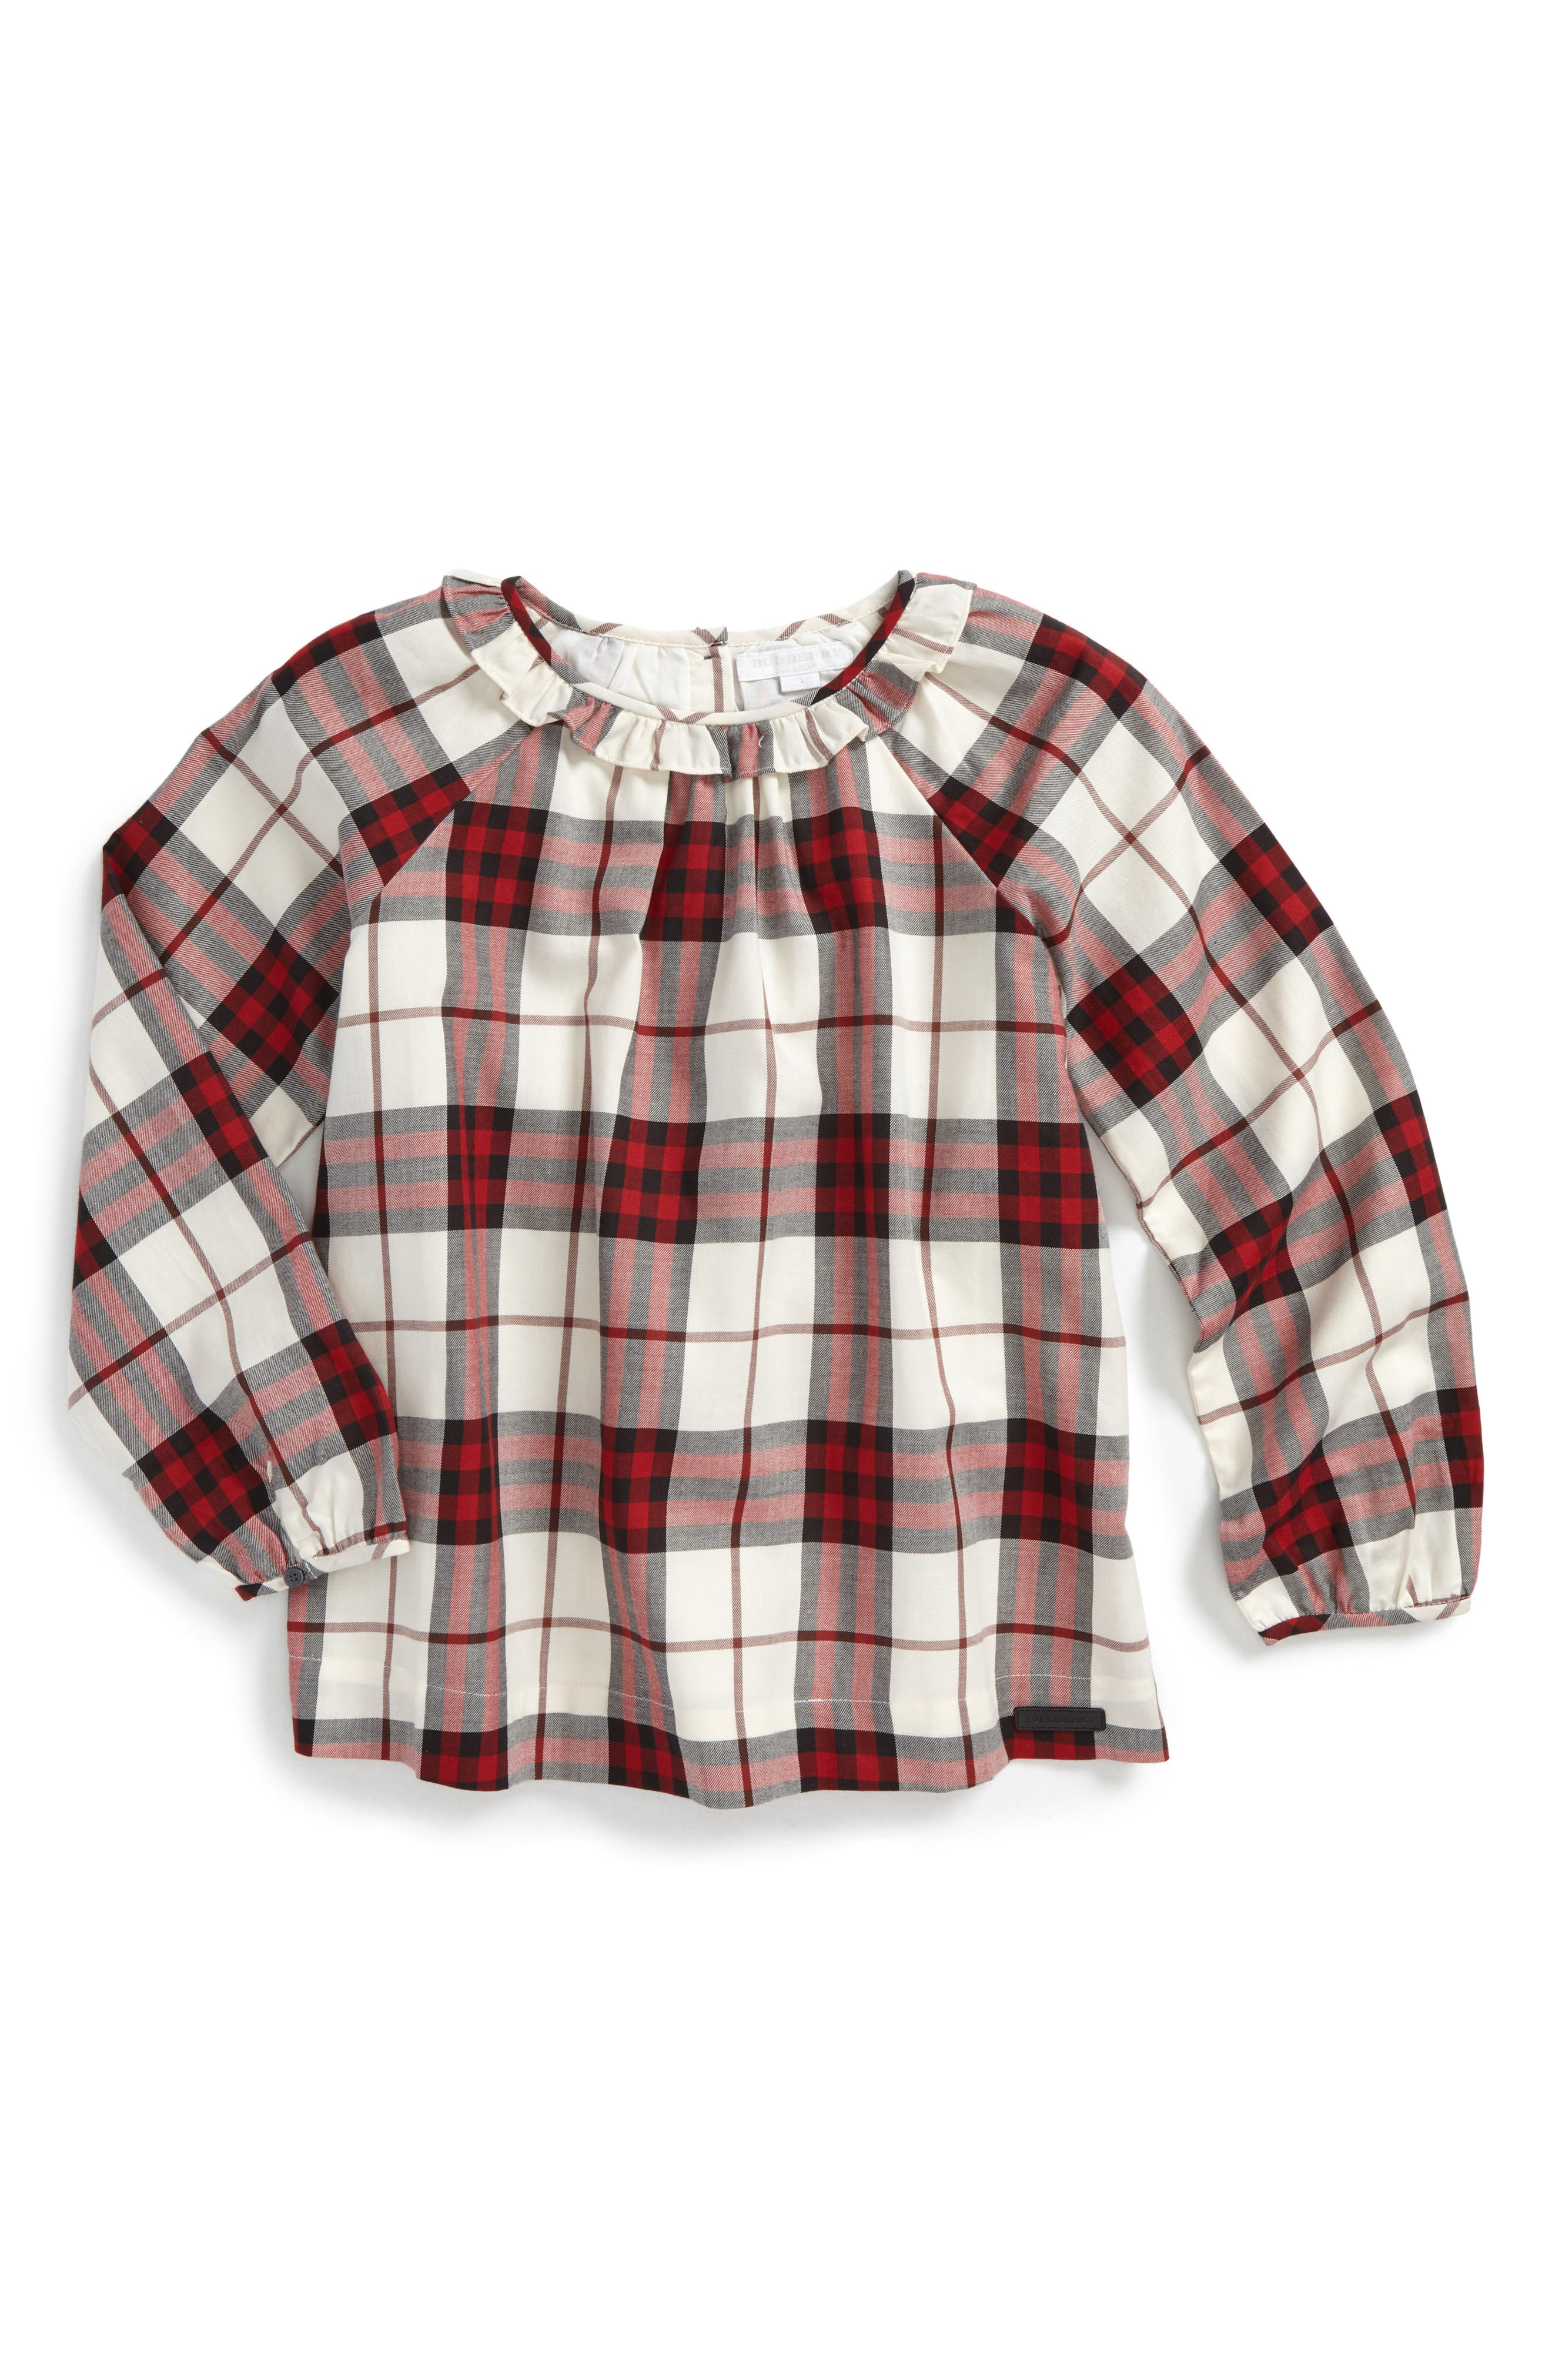 Alternate Image 1 Selected - Burberry Karly Check Cotton Top (Little Girls & Big Girls)